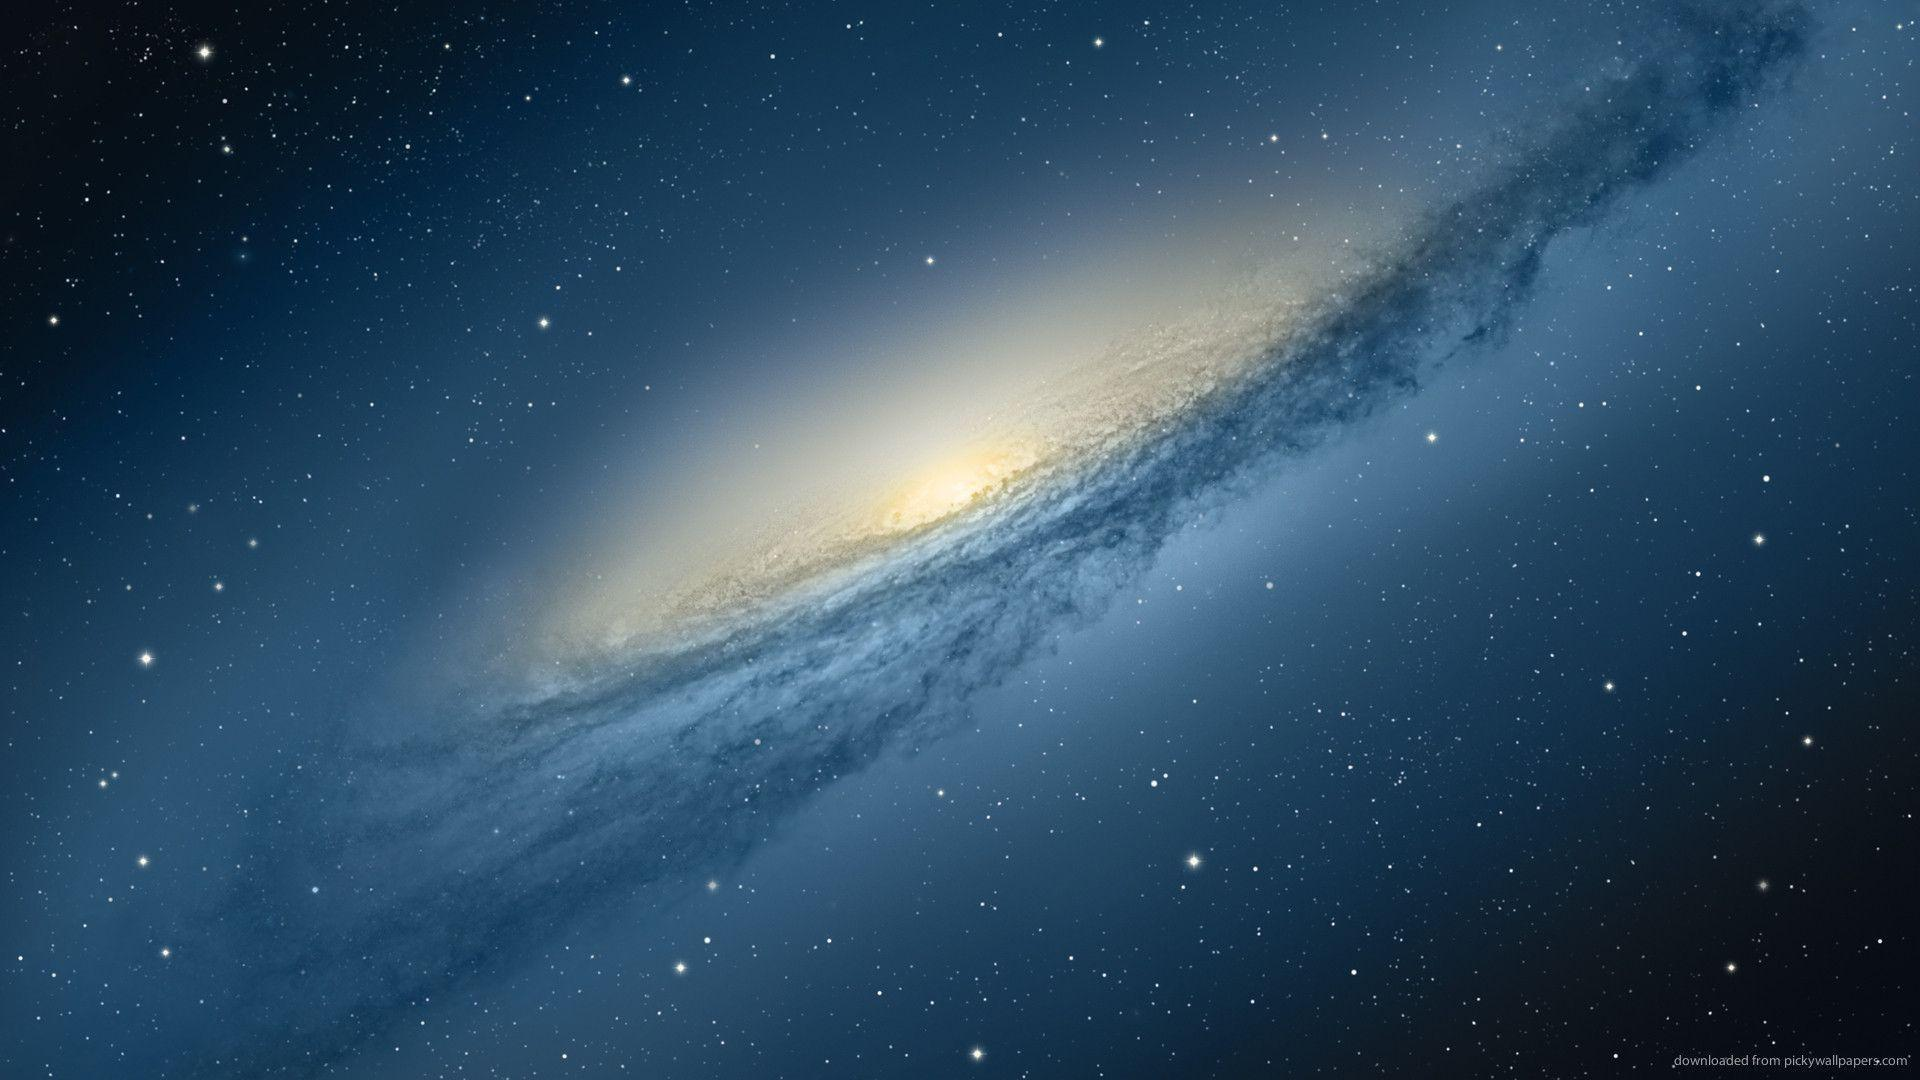 Galaxy Wallpapers 1920x1080 - Wallpaper Cave